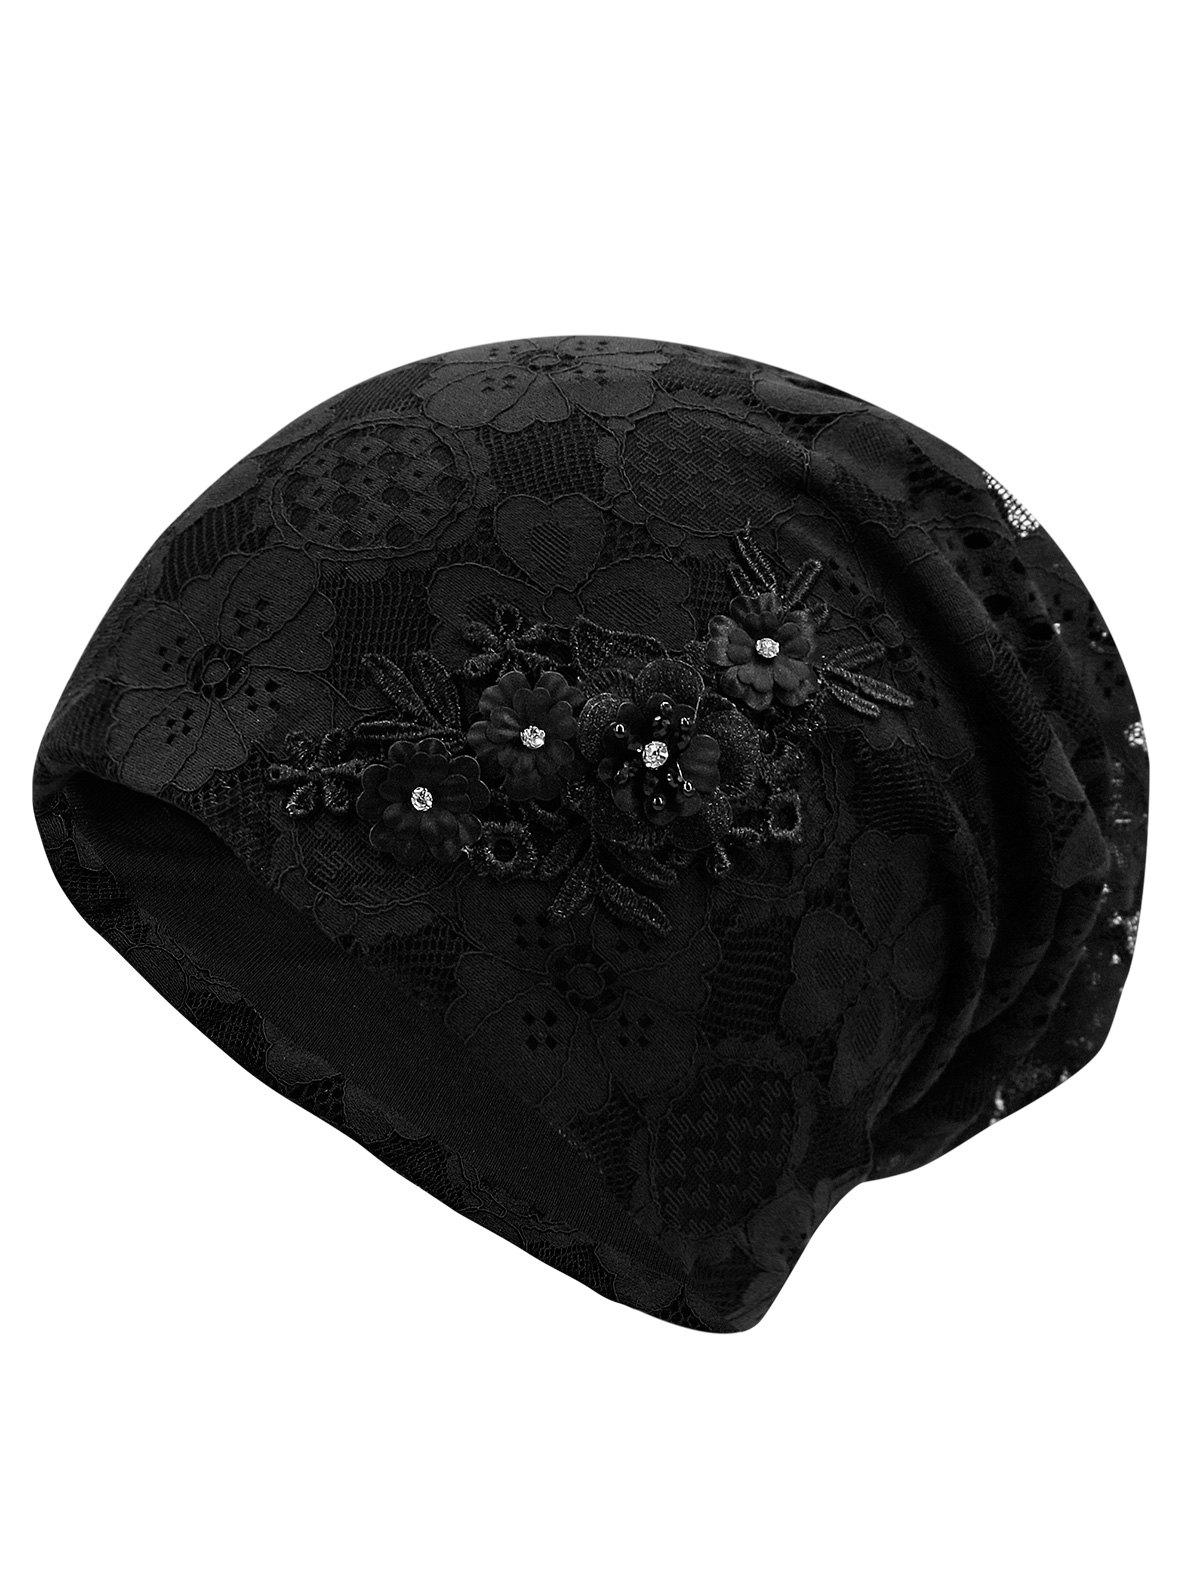 Store Unique Blooming Flowers Lace Beanie